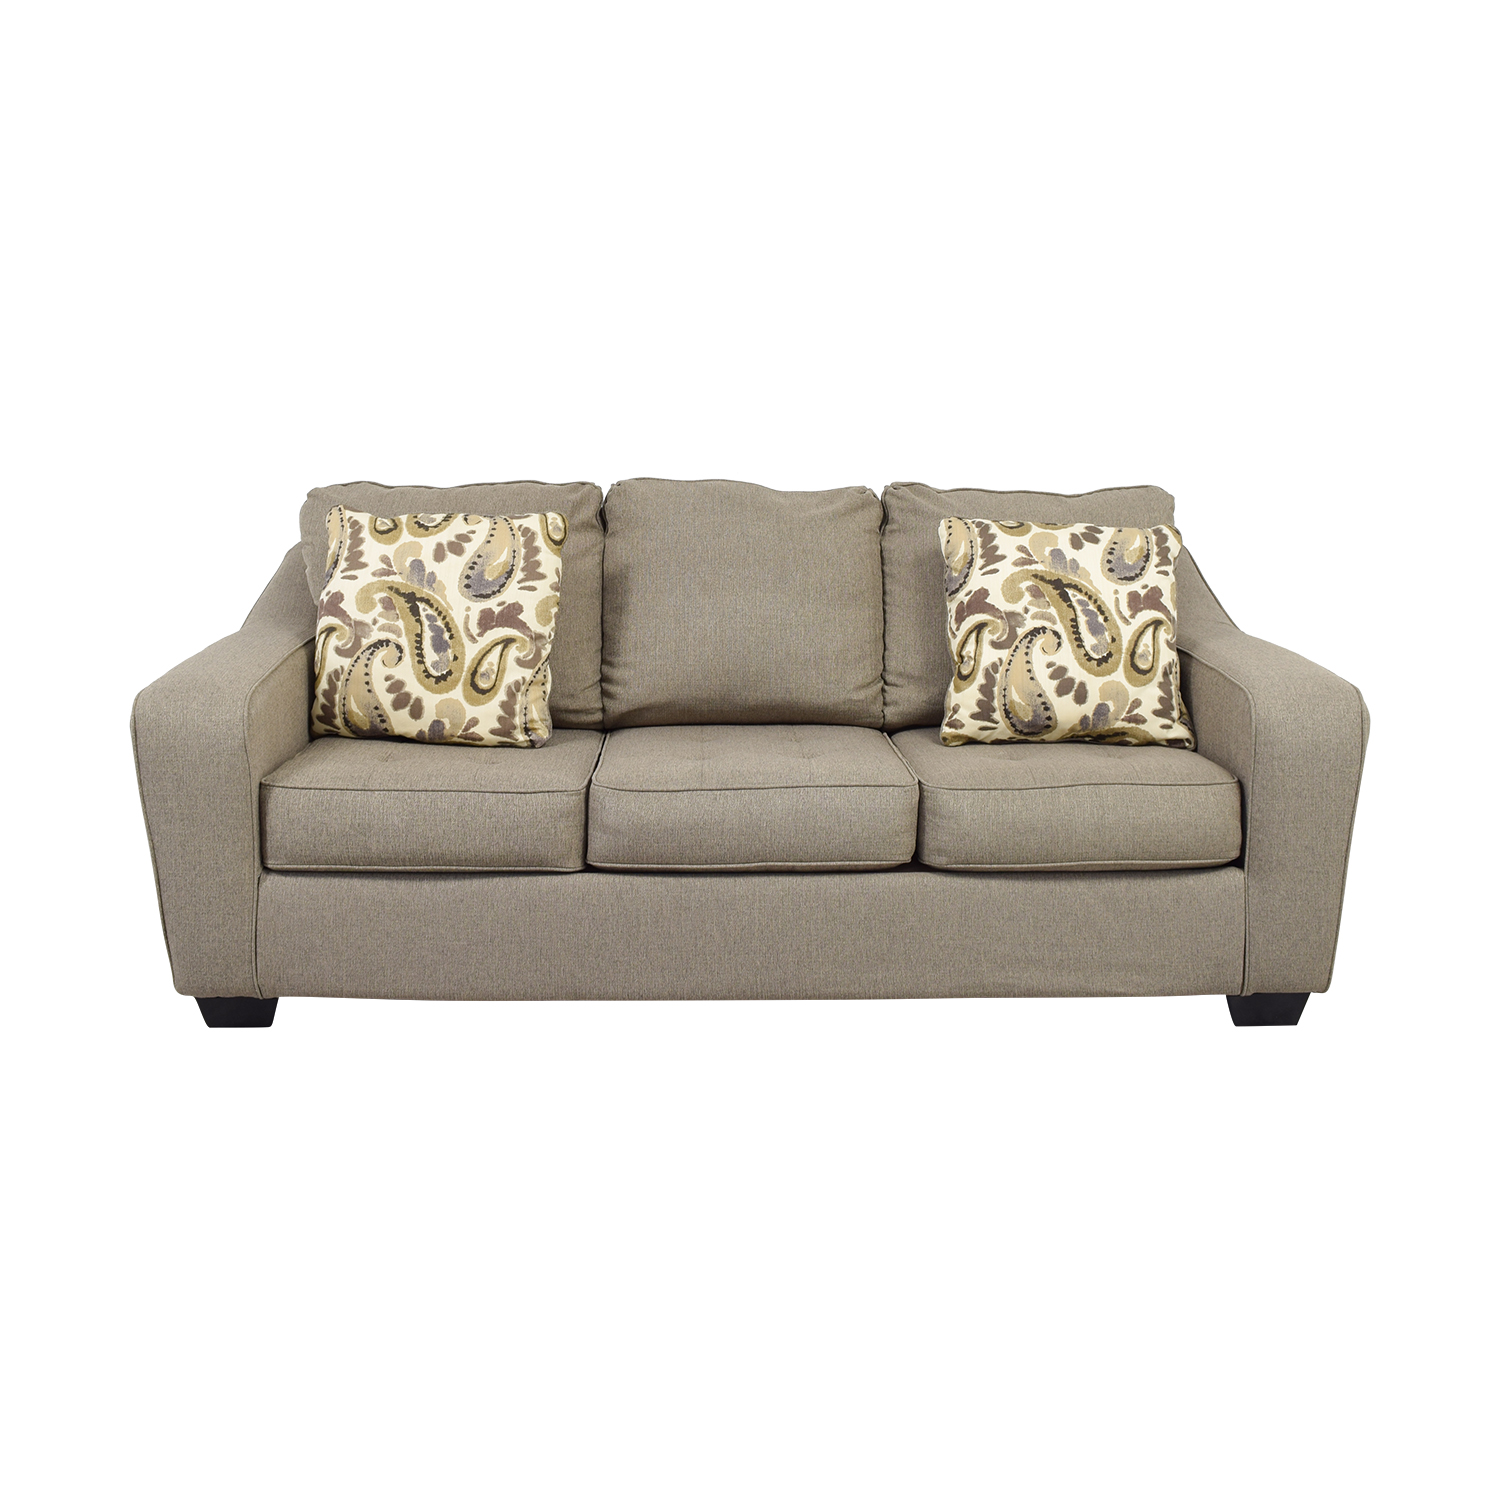 Ashley Furniture Ashley Furniture Grey Three-Cushion Couch Classic Sofas